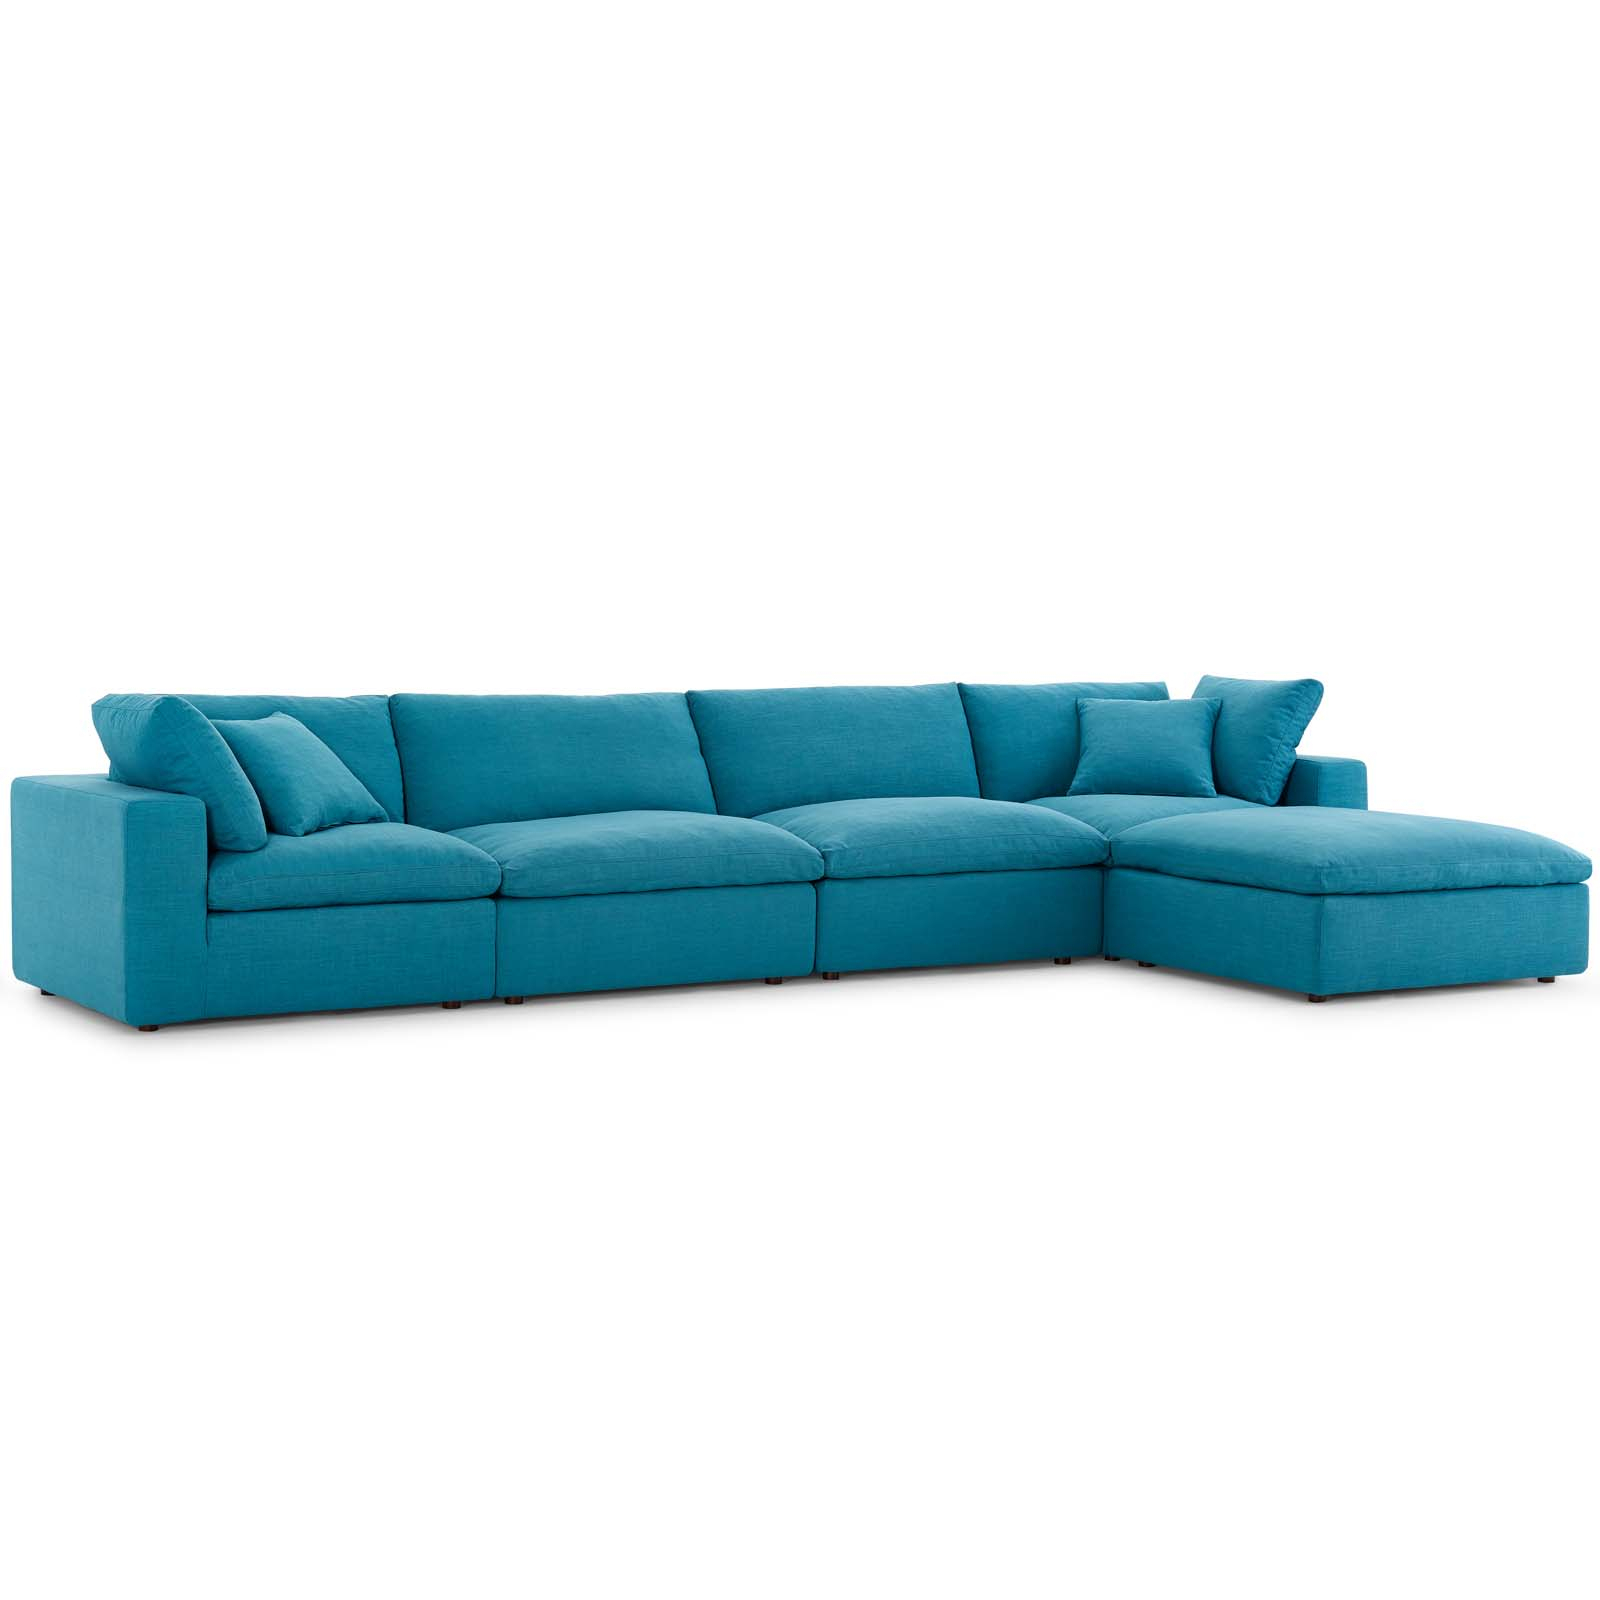 Commix Down Filled Overstuffed 5 Piece Sectional Sofa Set Teal Pertaining To Down Filled Sectional Sofas (View 9 of 15)